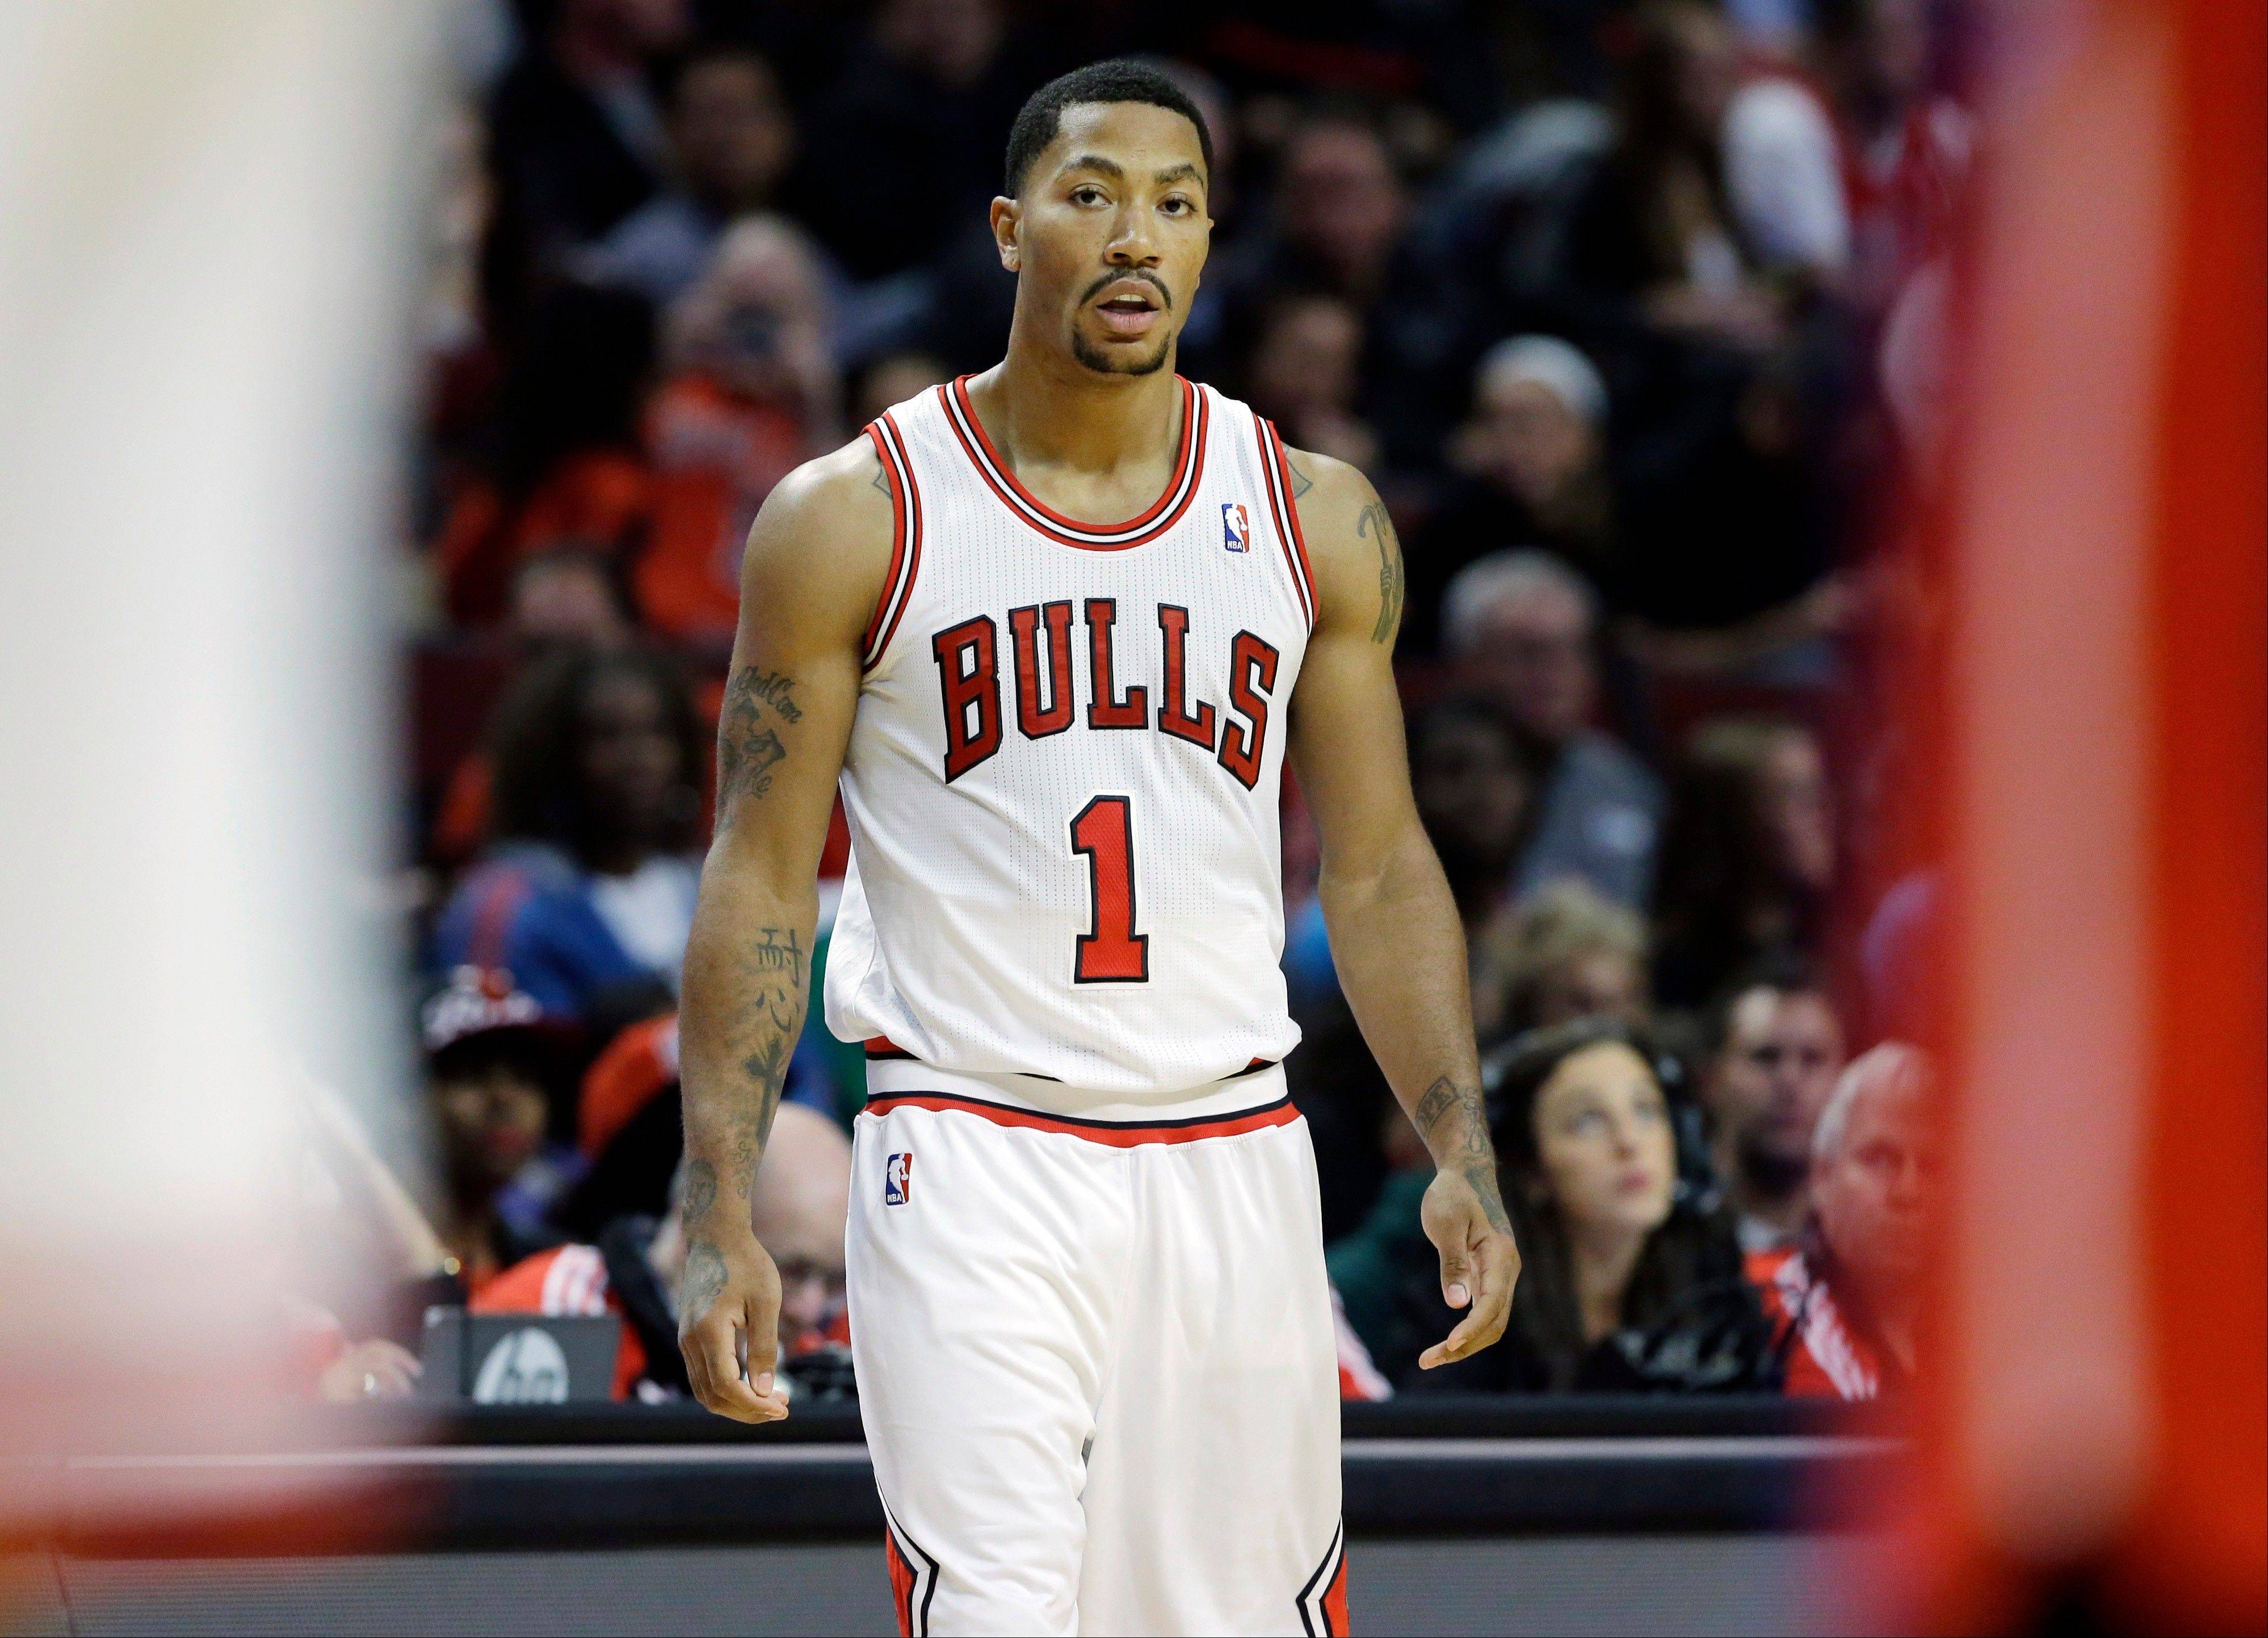 TNT analysts Reggie Miller and Steve Kerr are impressed by the preseason form of Bulls guard Derrick Rose, but they're still concerned whether the team and Rose can hold up over a full NBA season.